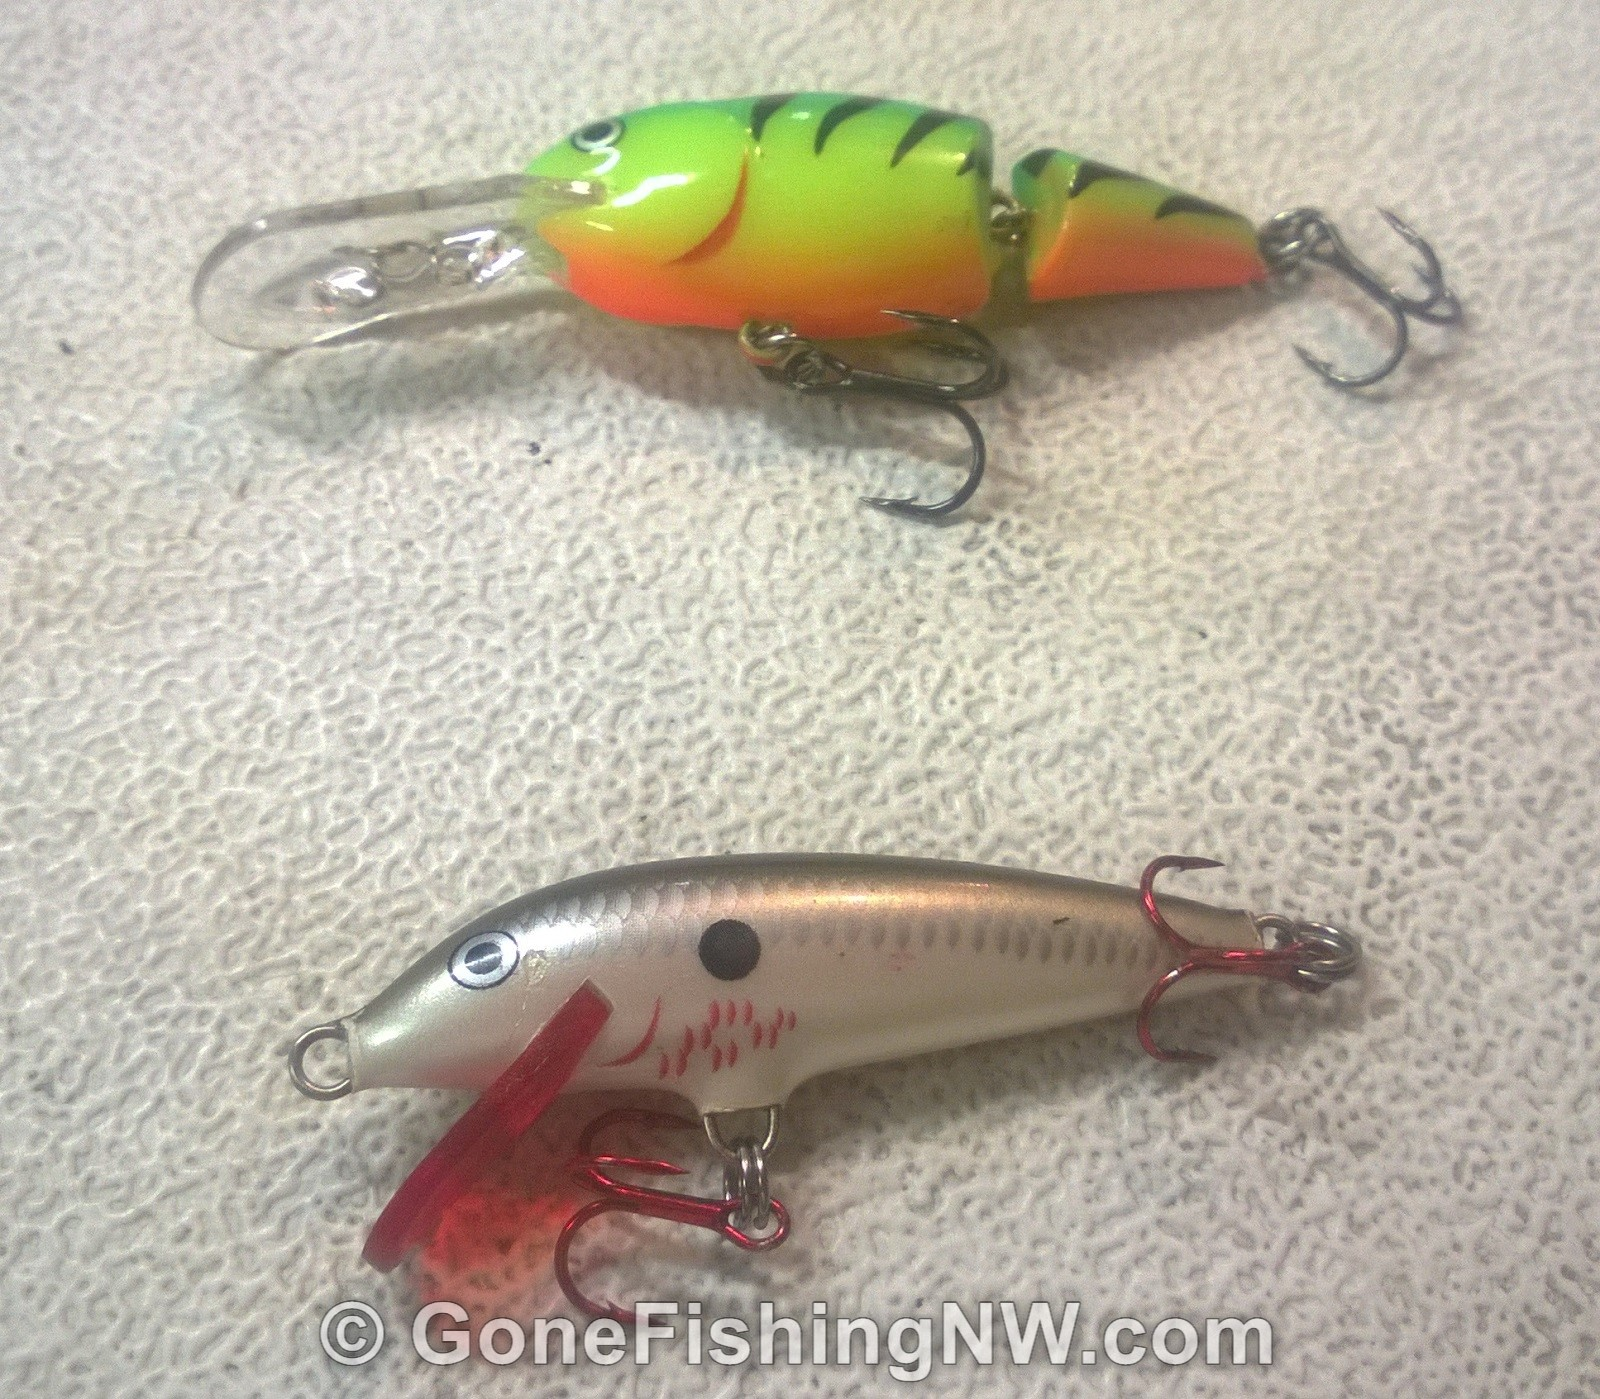 The best trout fishing lures gone fishing nw for Best lures for river fishing